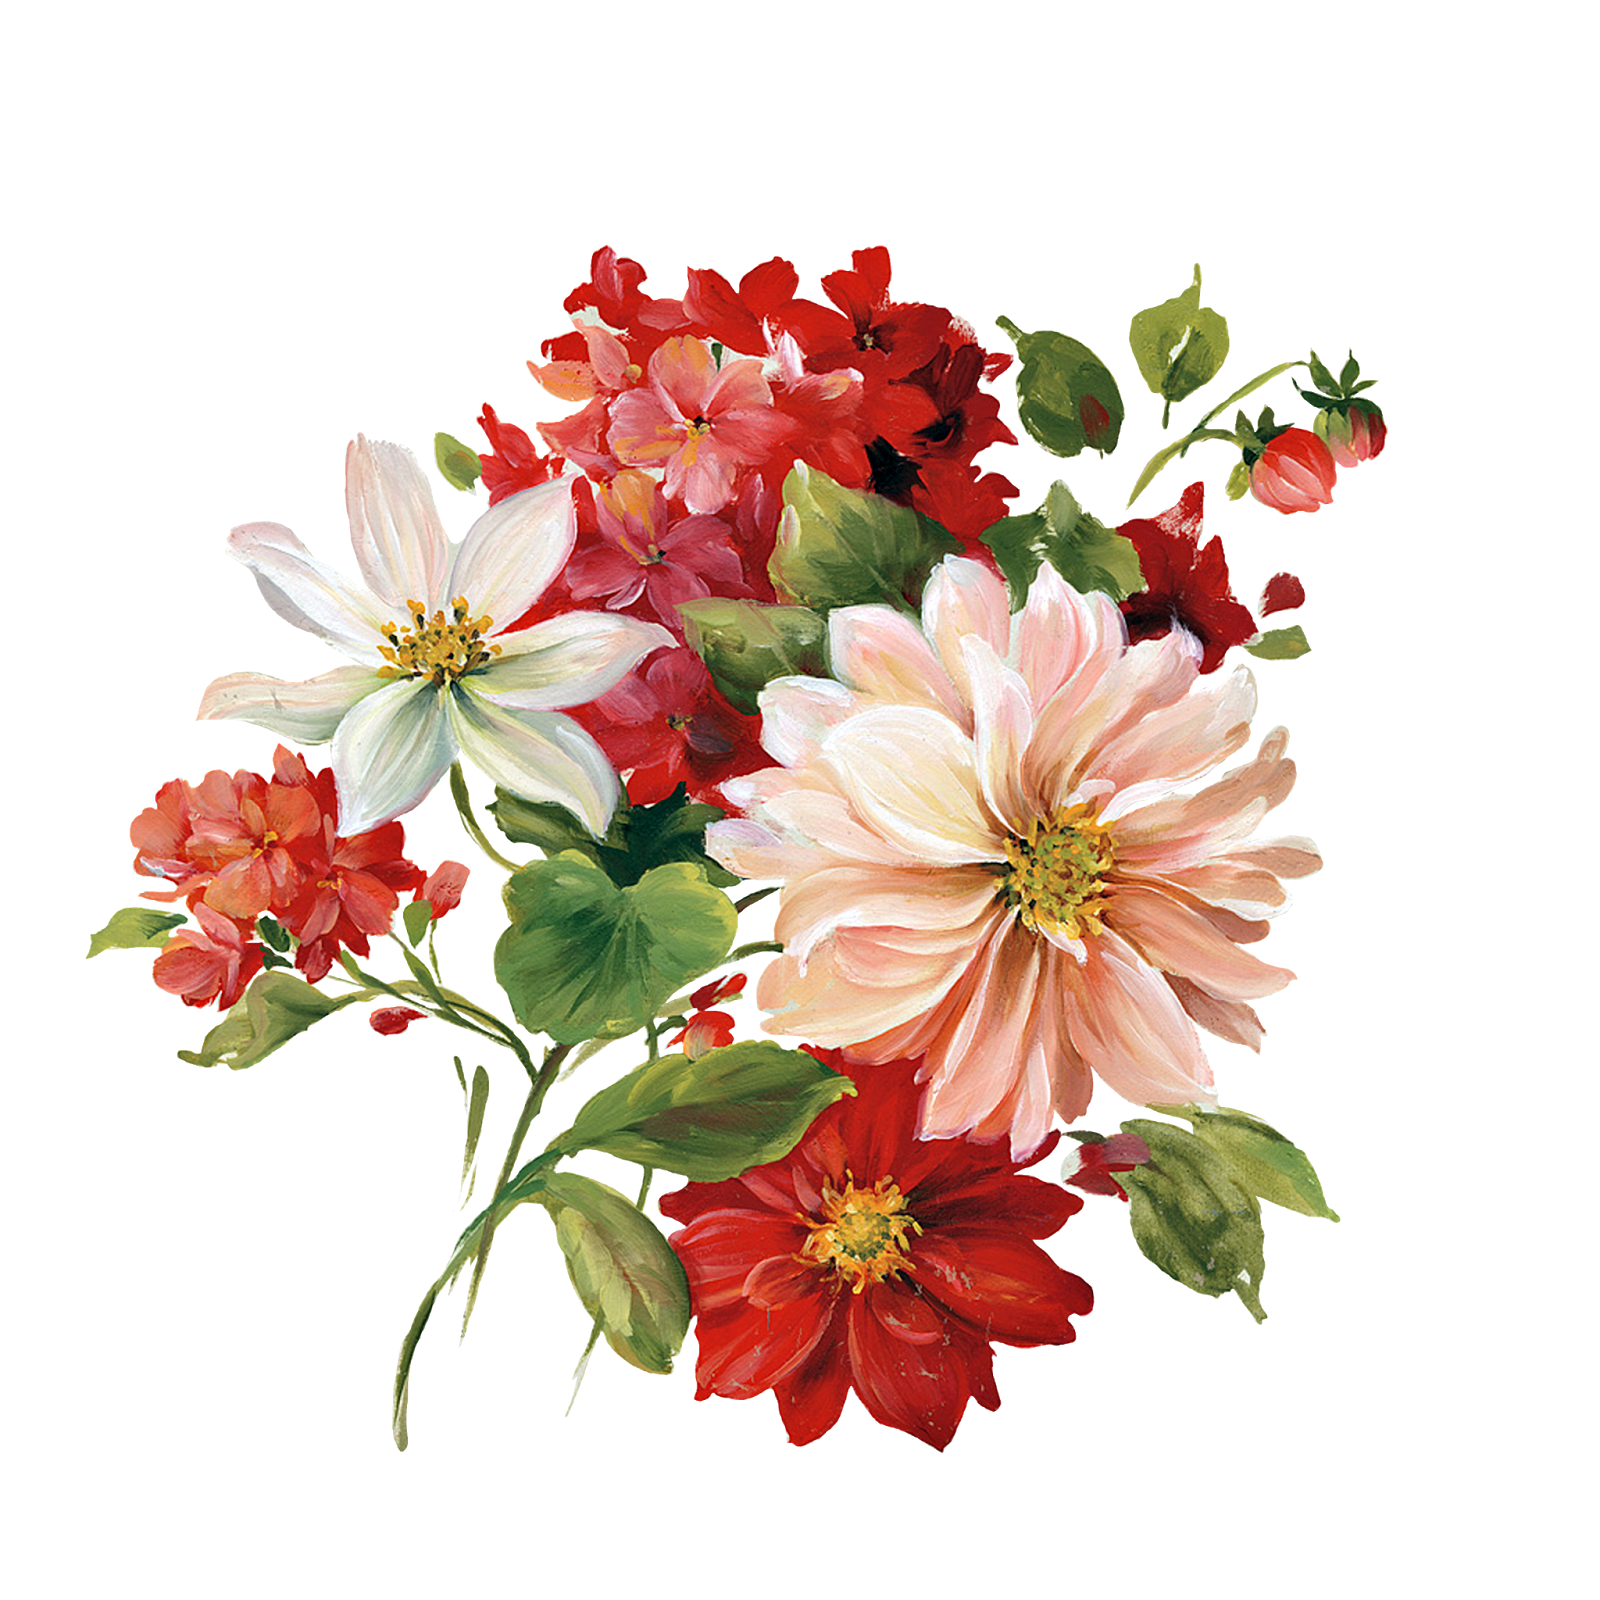 Floral Png. Picture Arts Png Library #43877.